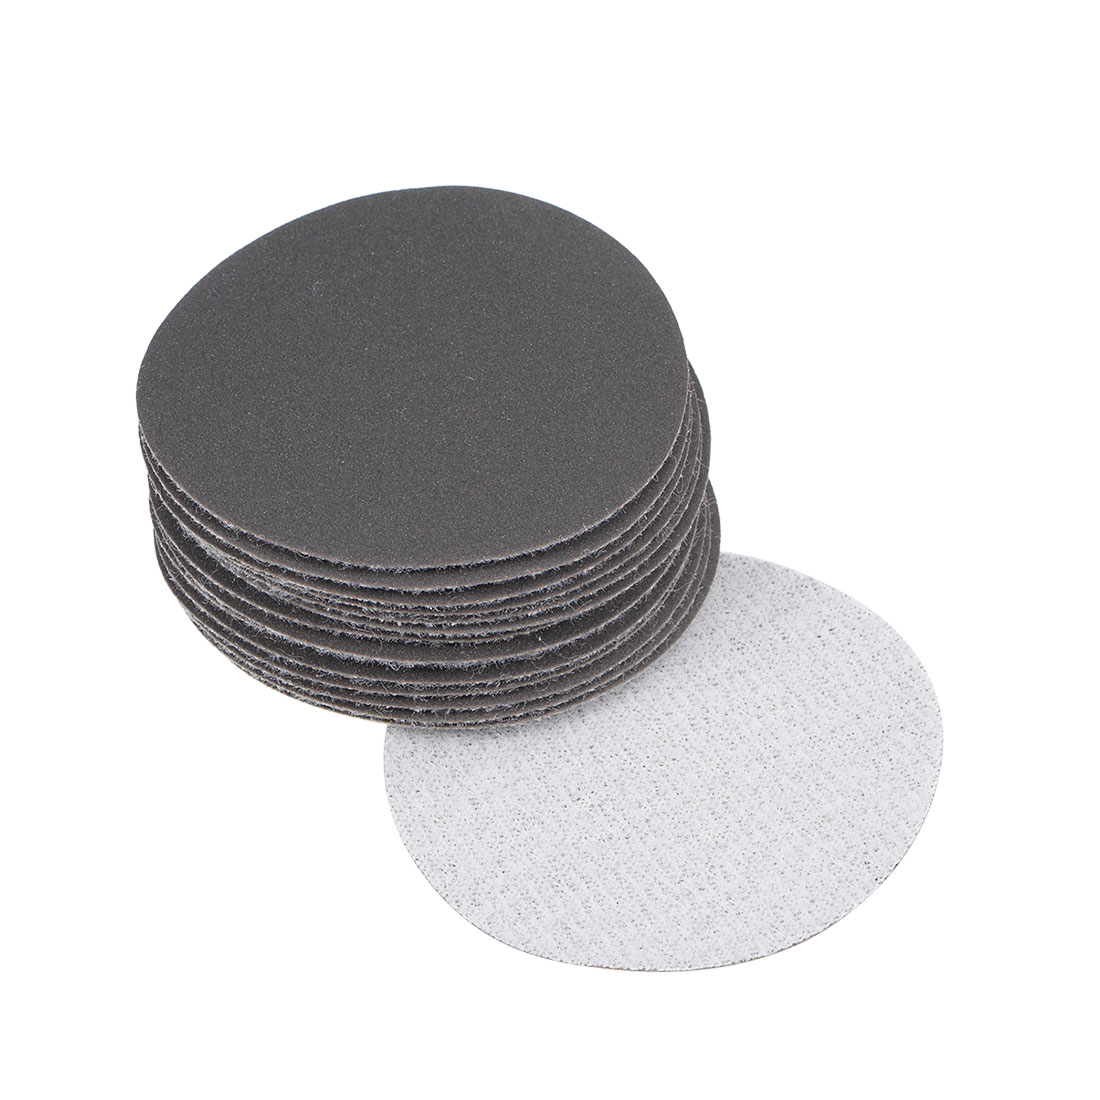 2 inch Wet Dry Discs 600 Grit Hook and Loop Sanding Disc Silicon Carbide 15pcs